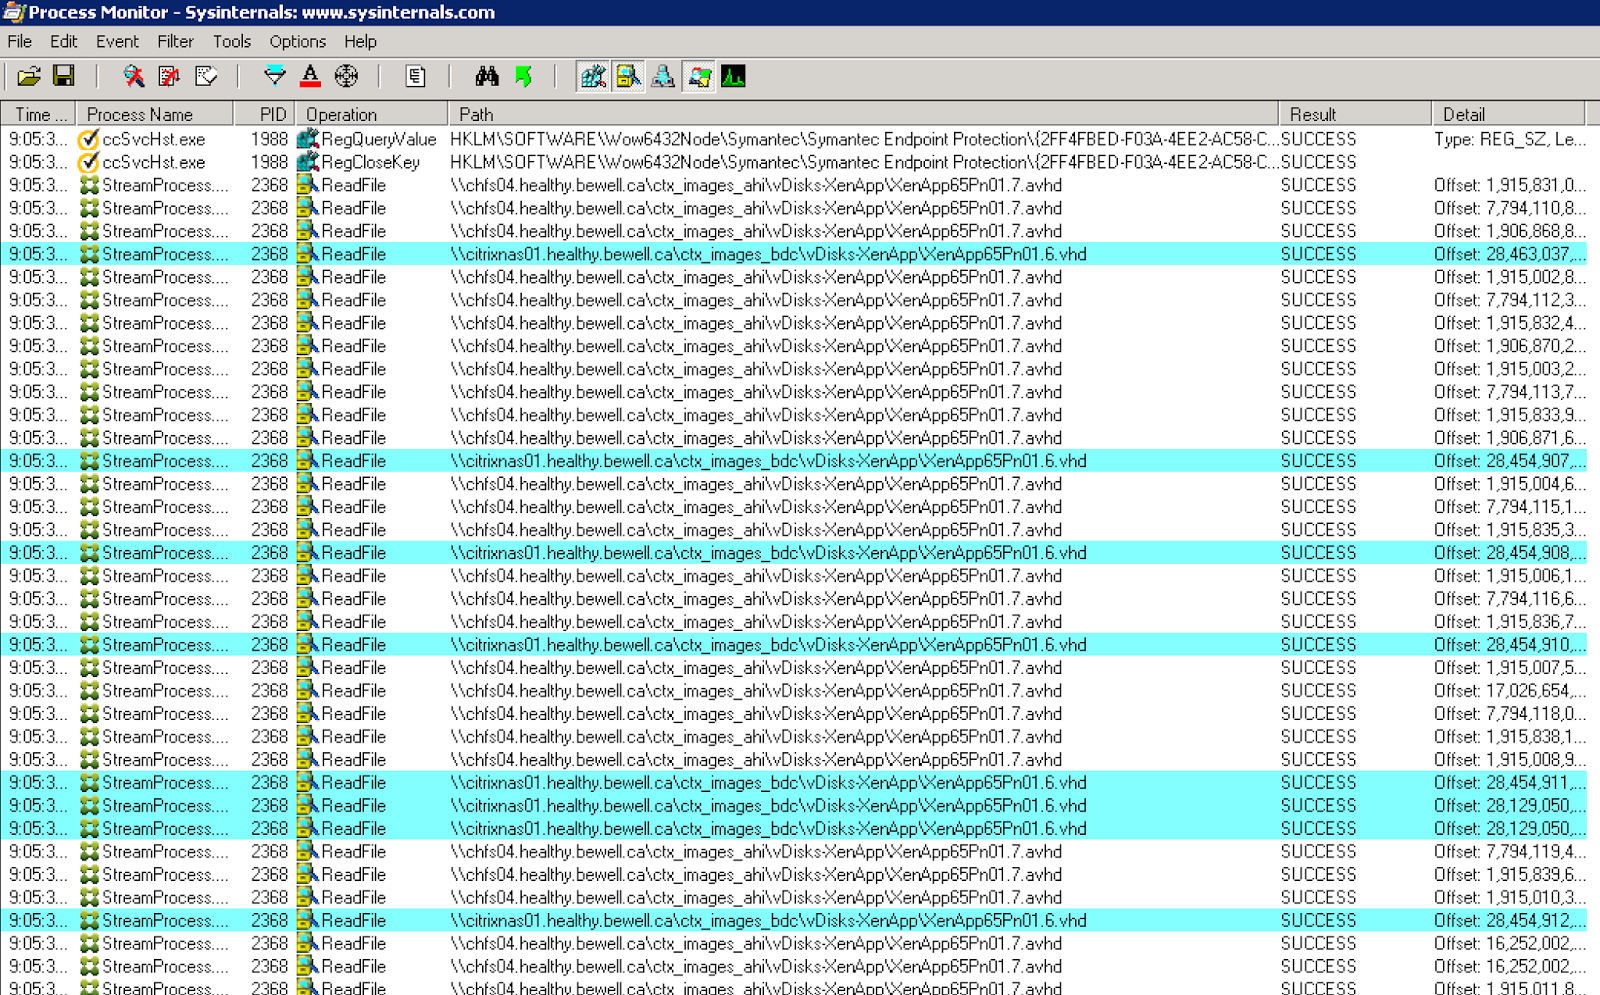 Becareful of your AVHD to VHD chains with Citrix PVS with